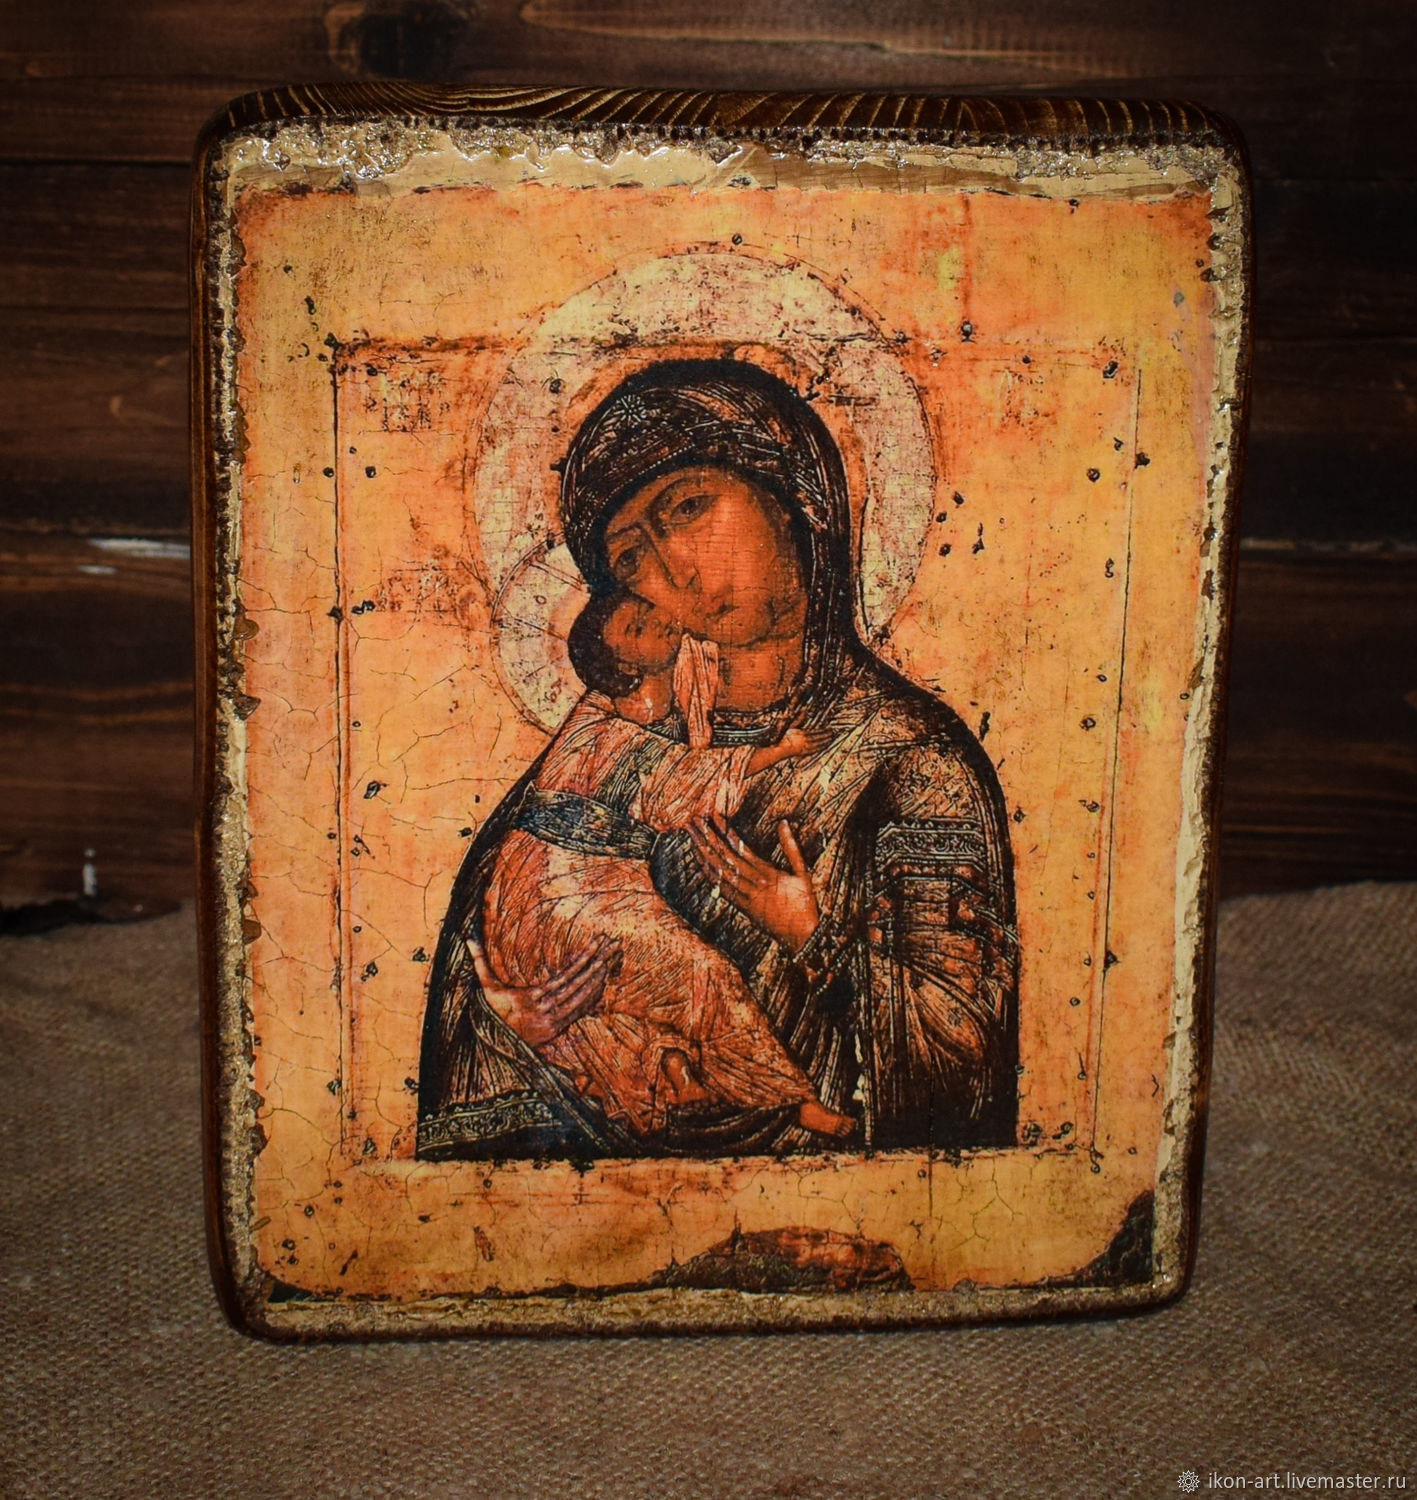 The icon of the mother of God of the Pskov-caves icon